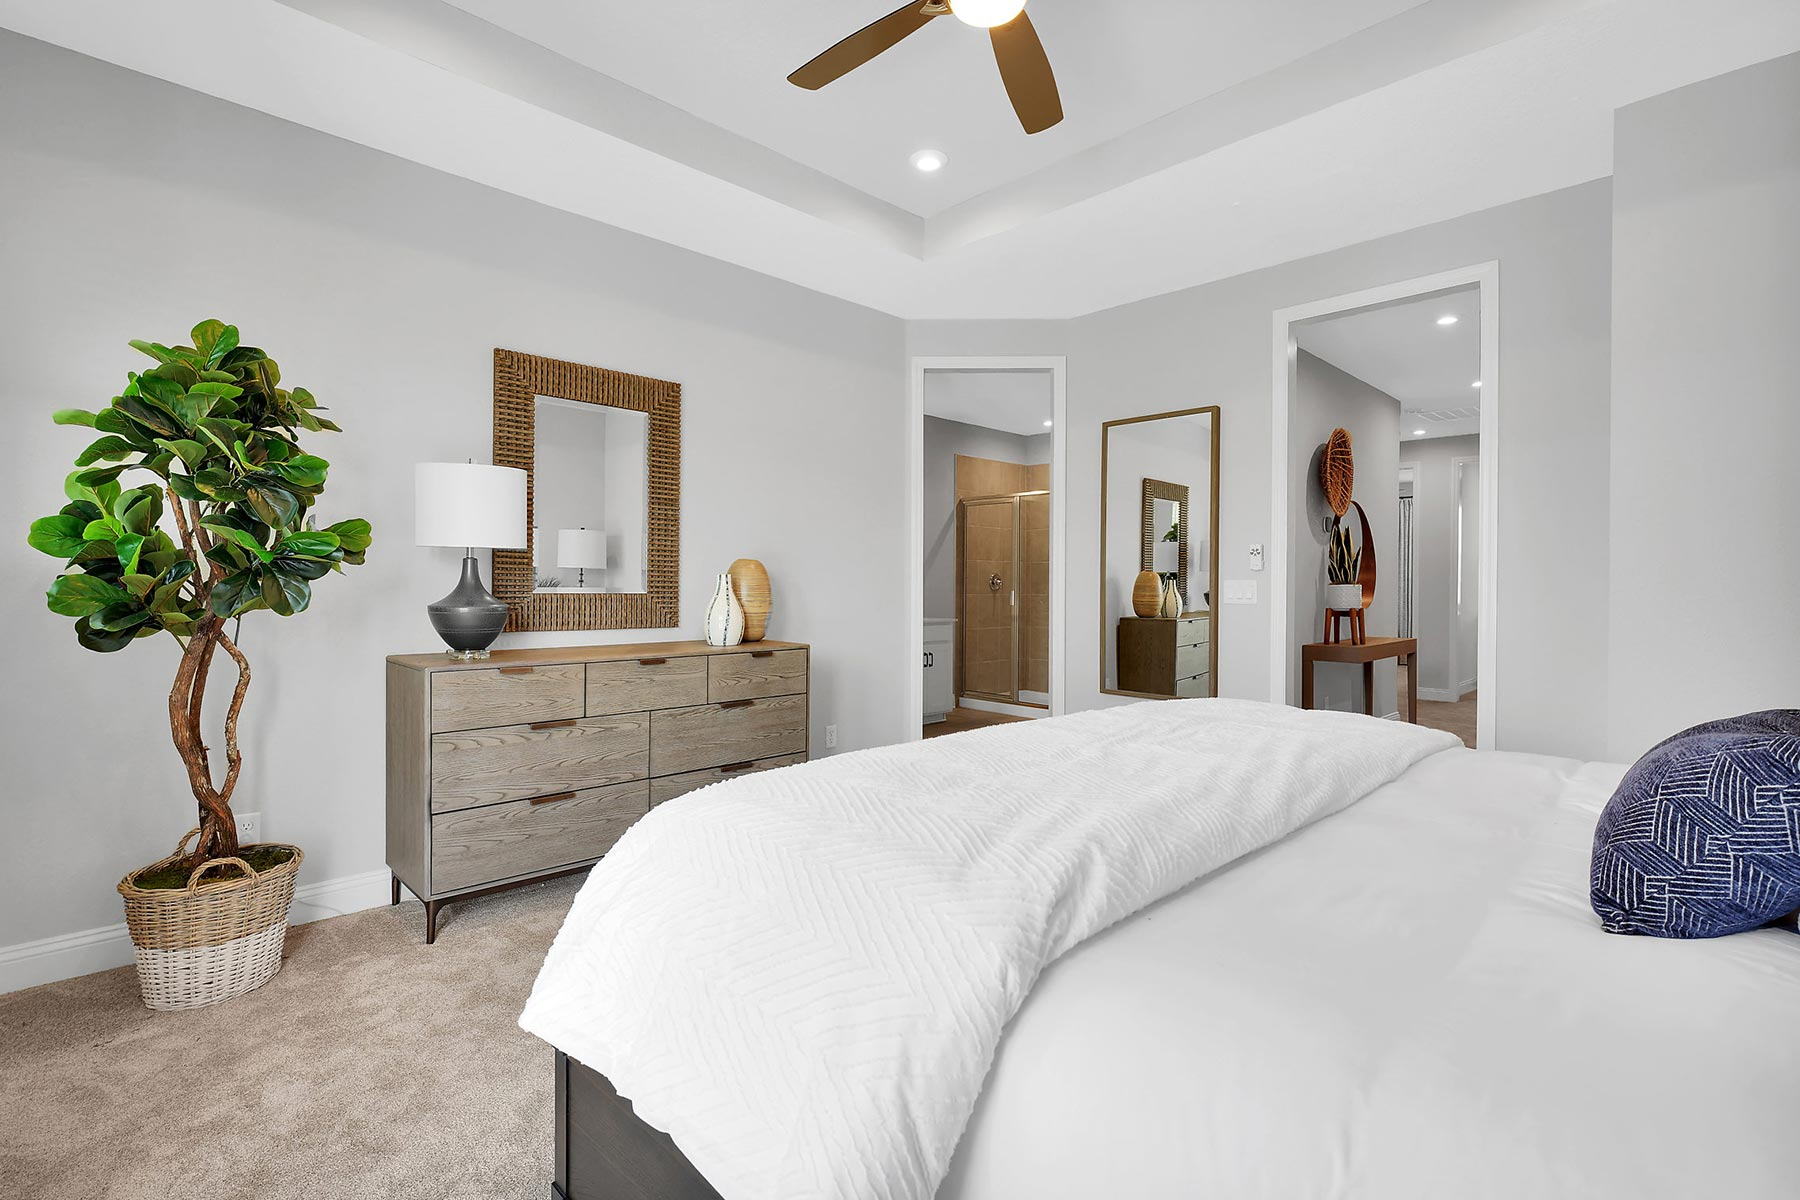 Rialta Plan Bedroom at Pablo Cove in Jacksonville Florida by Mattamy Homes